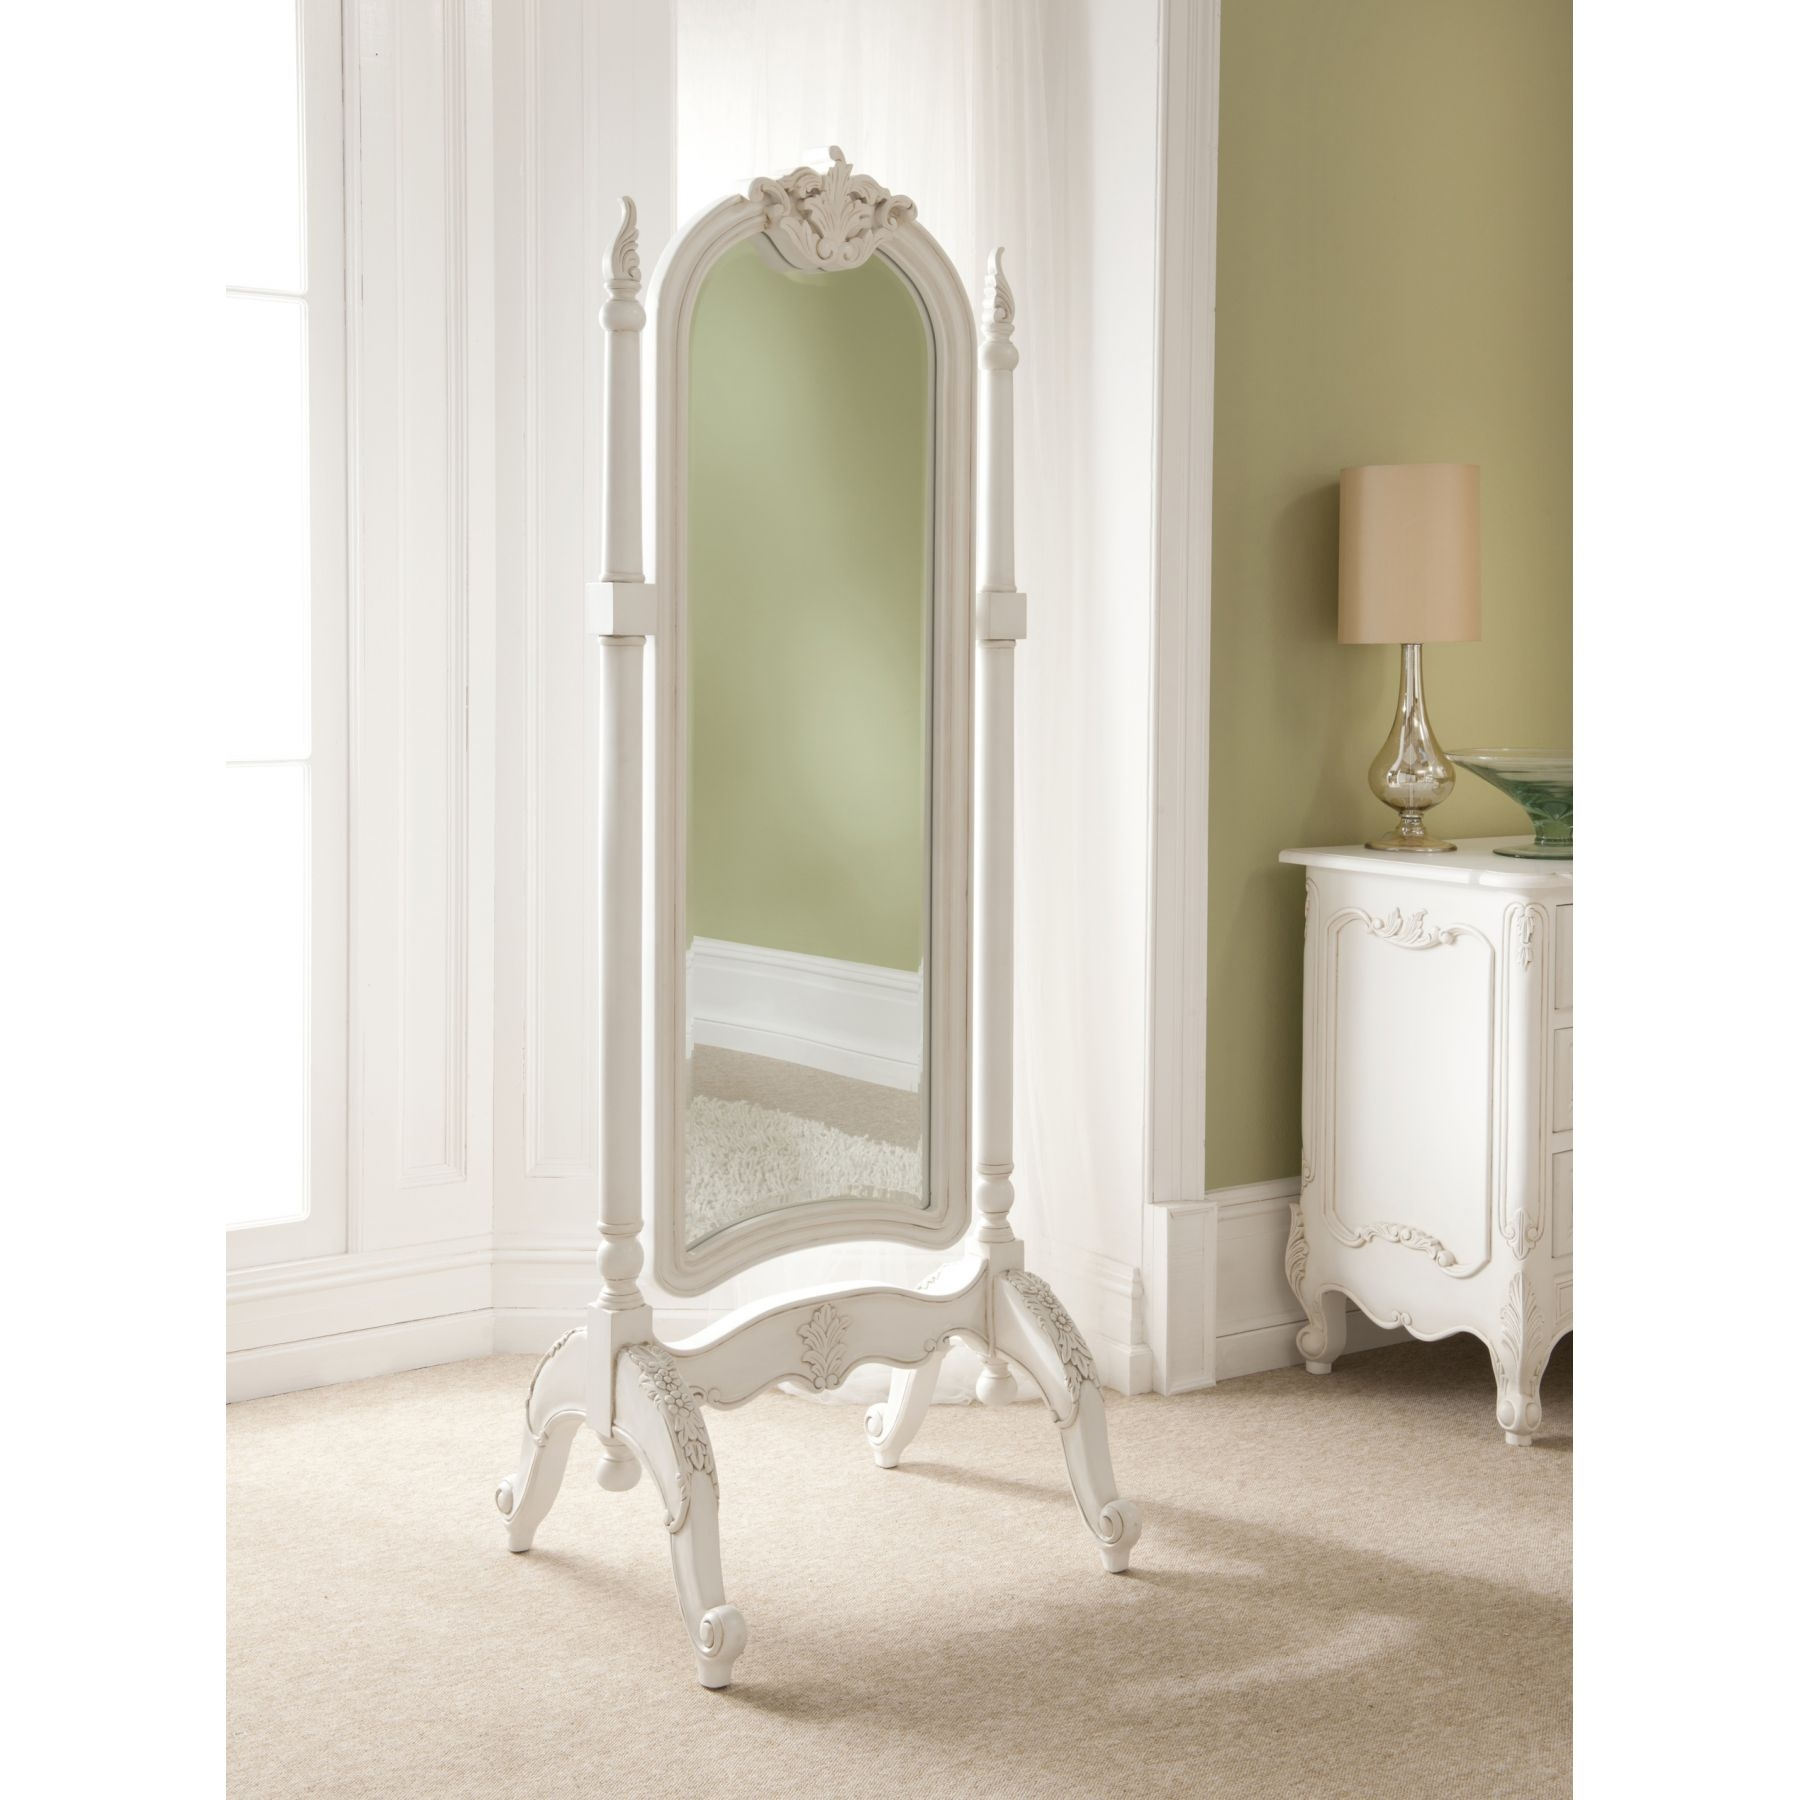 Cheval Mirror Cheval Mirror Pinterest Cheval Mirror Throughout Vintage Standing Mirror (View 9 of 15)